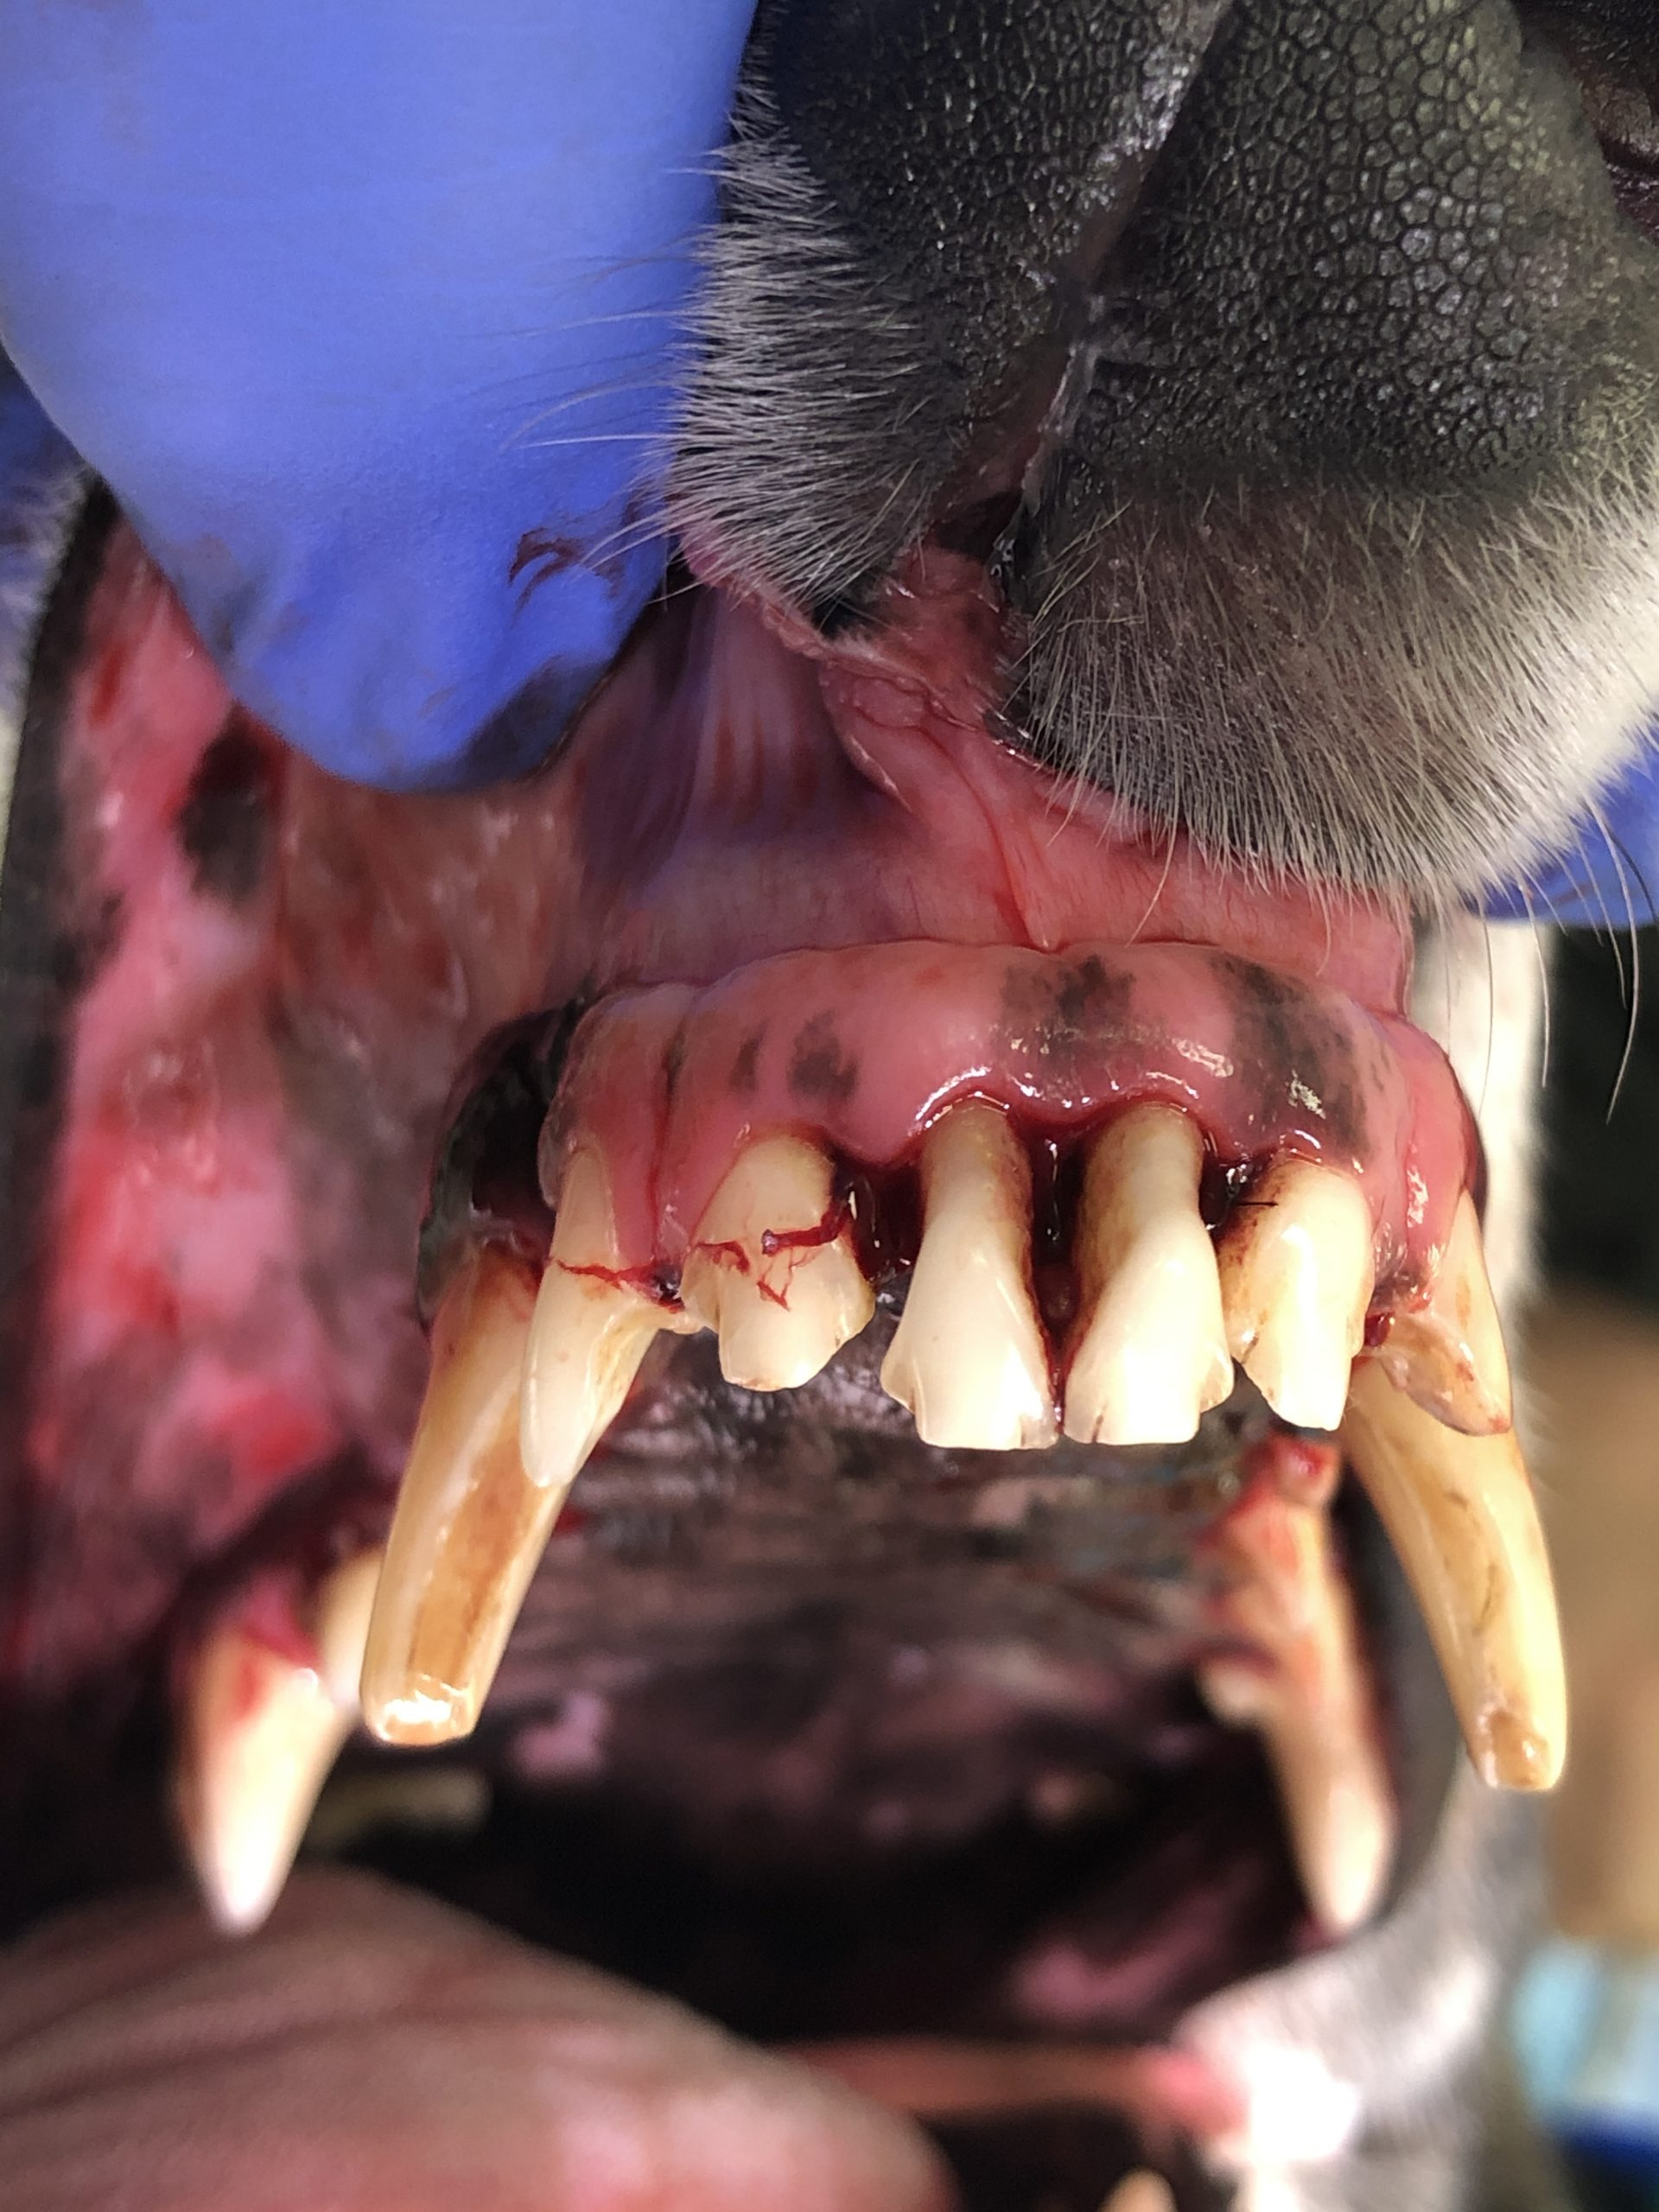 Periodontitis has destroyed a lot of the attachment to these incisors.